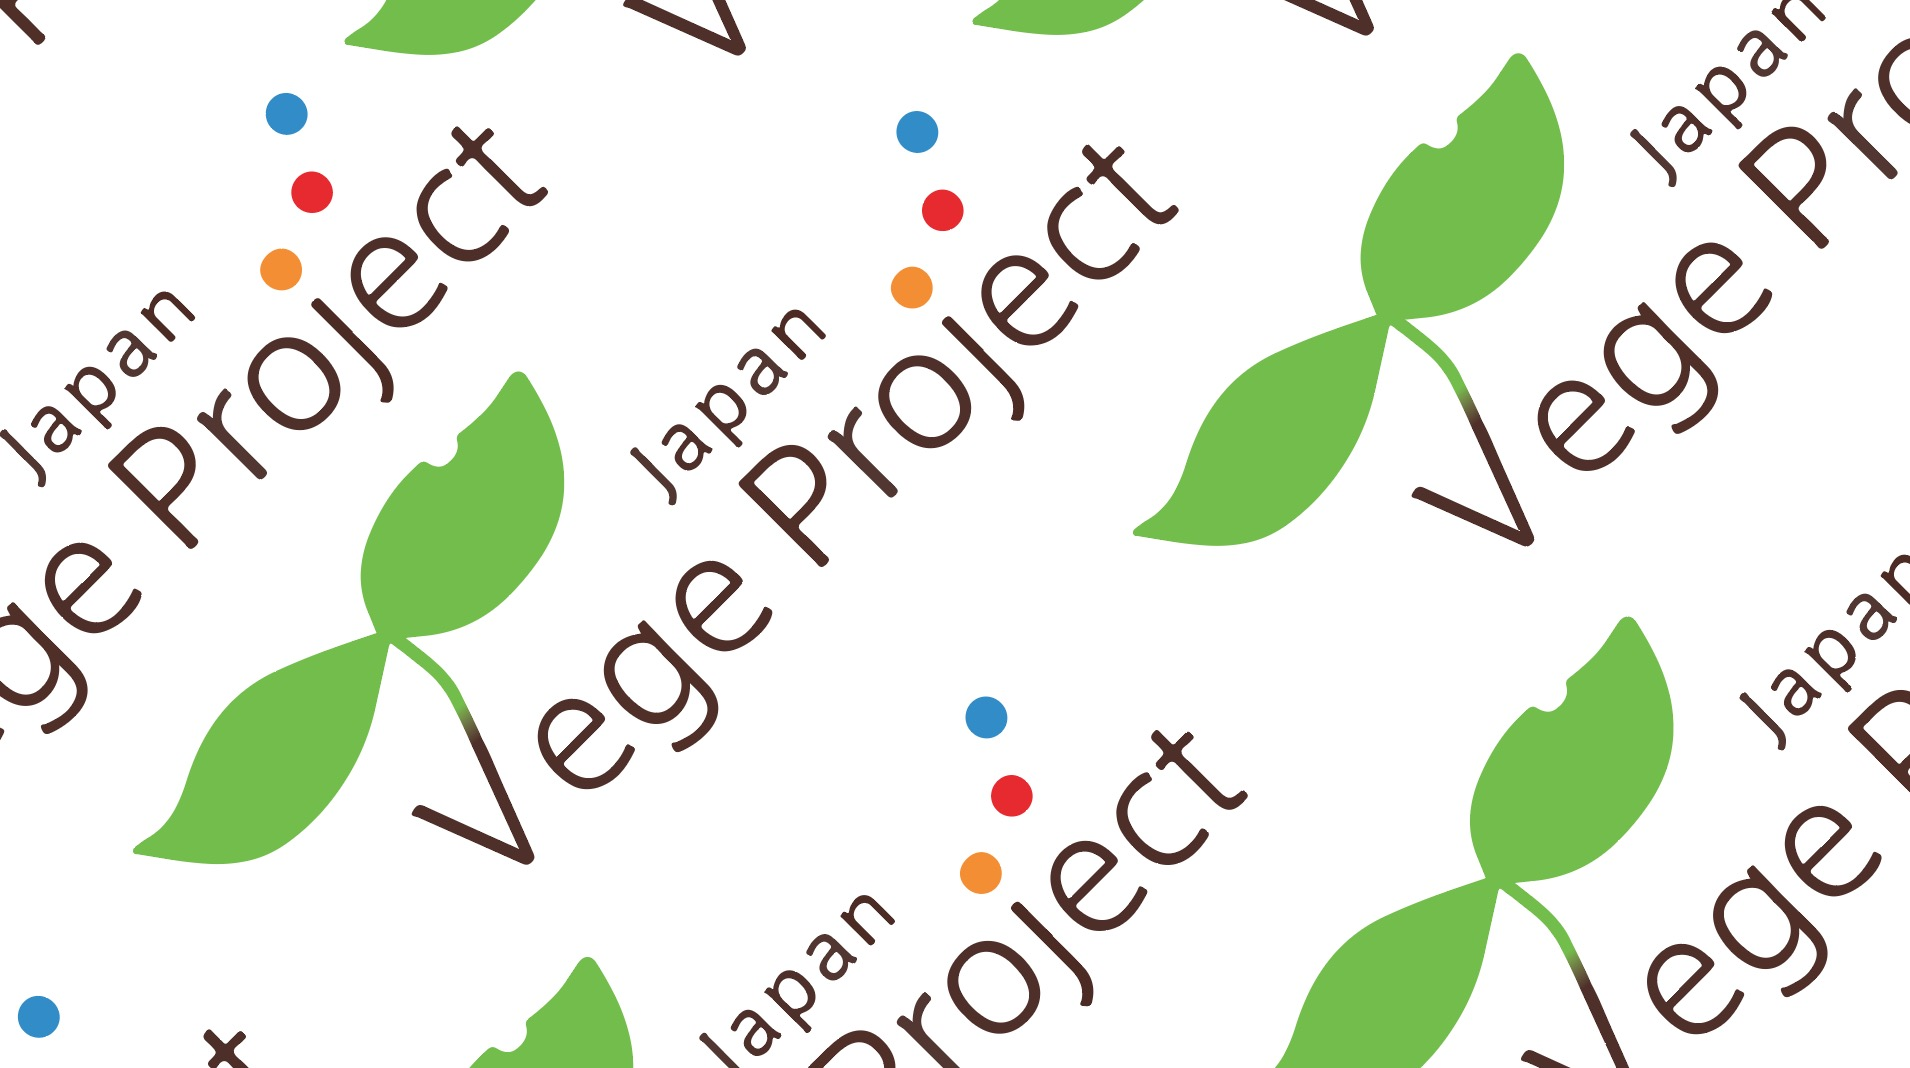 neoyume vegeproject cover